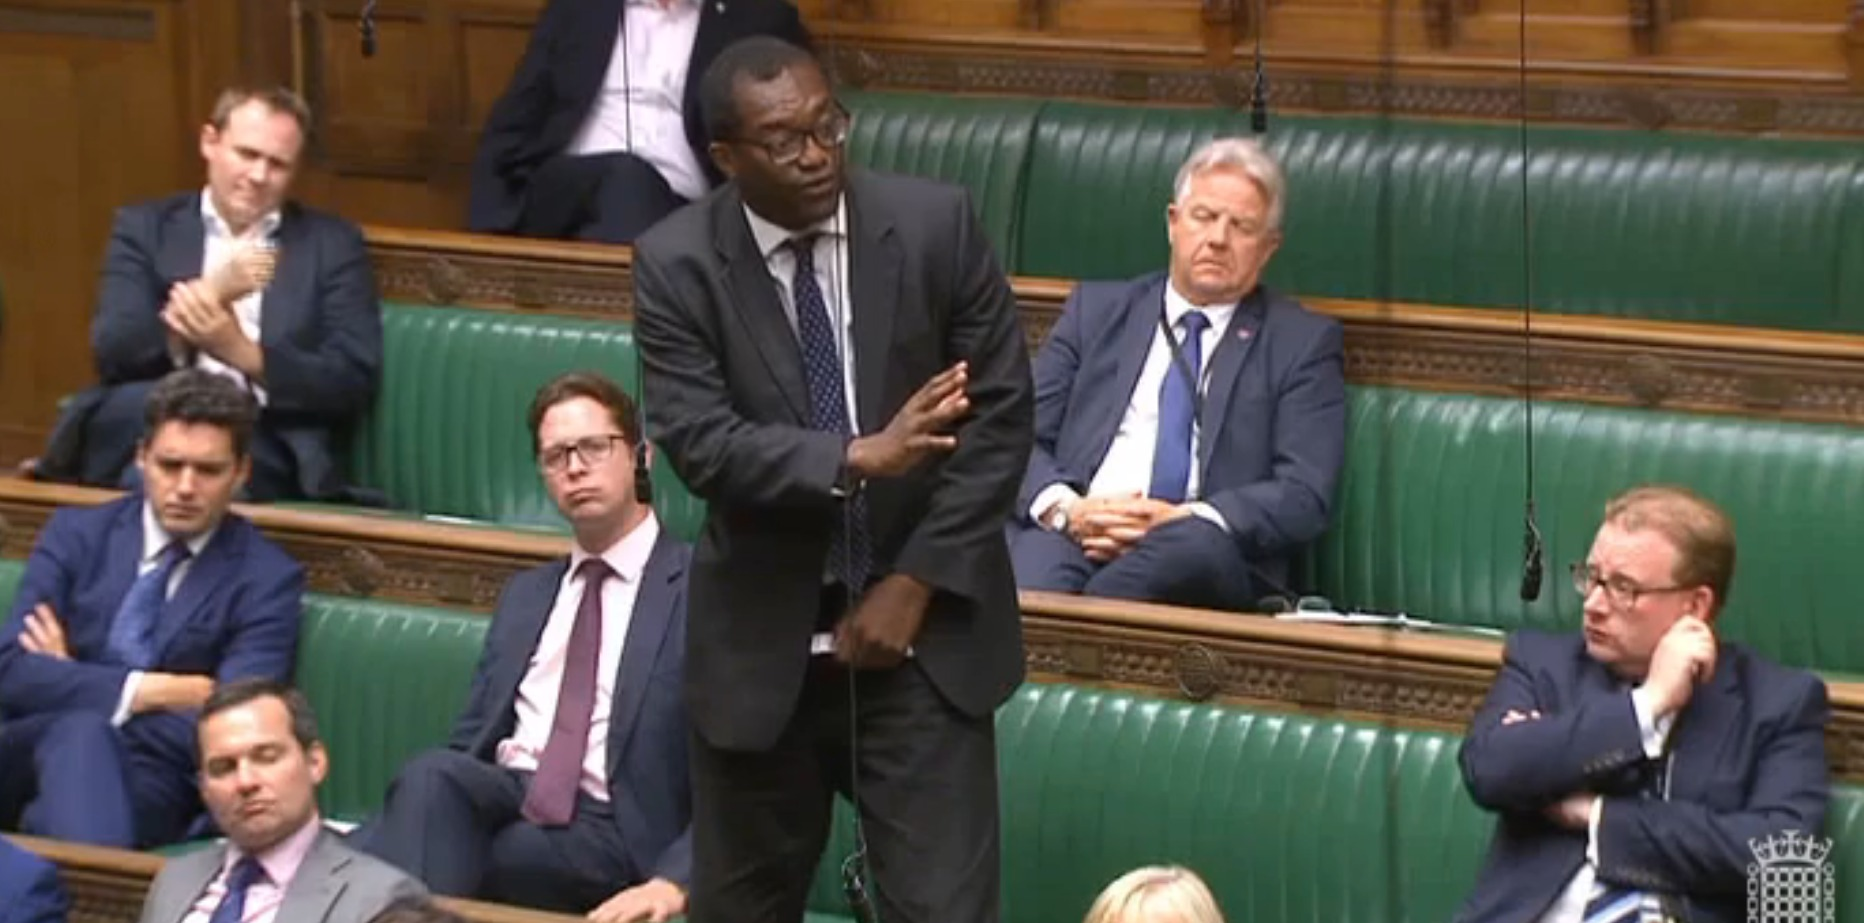 NODDING OFF: Ayr, Carrick and Cumnock MP Bill Grant fell asleep while Kwasi Kwarteng spoke.